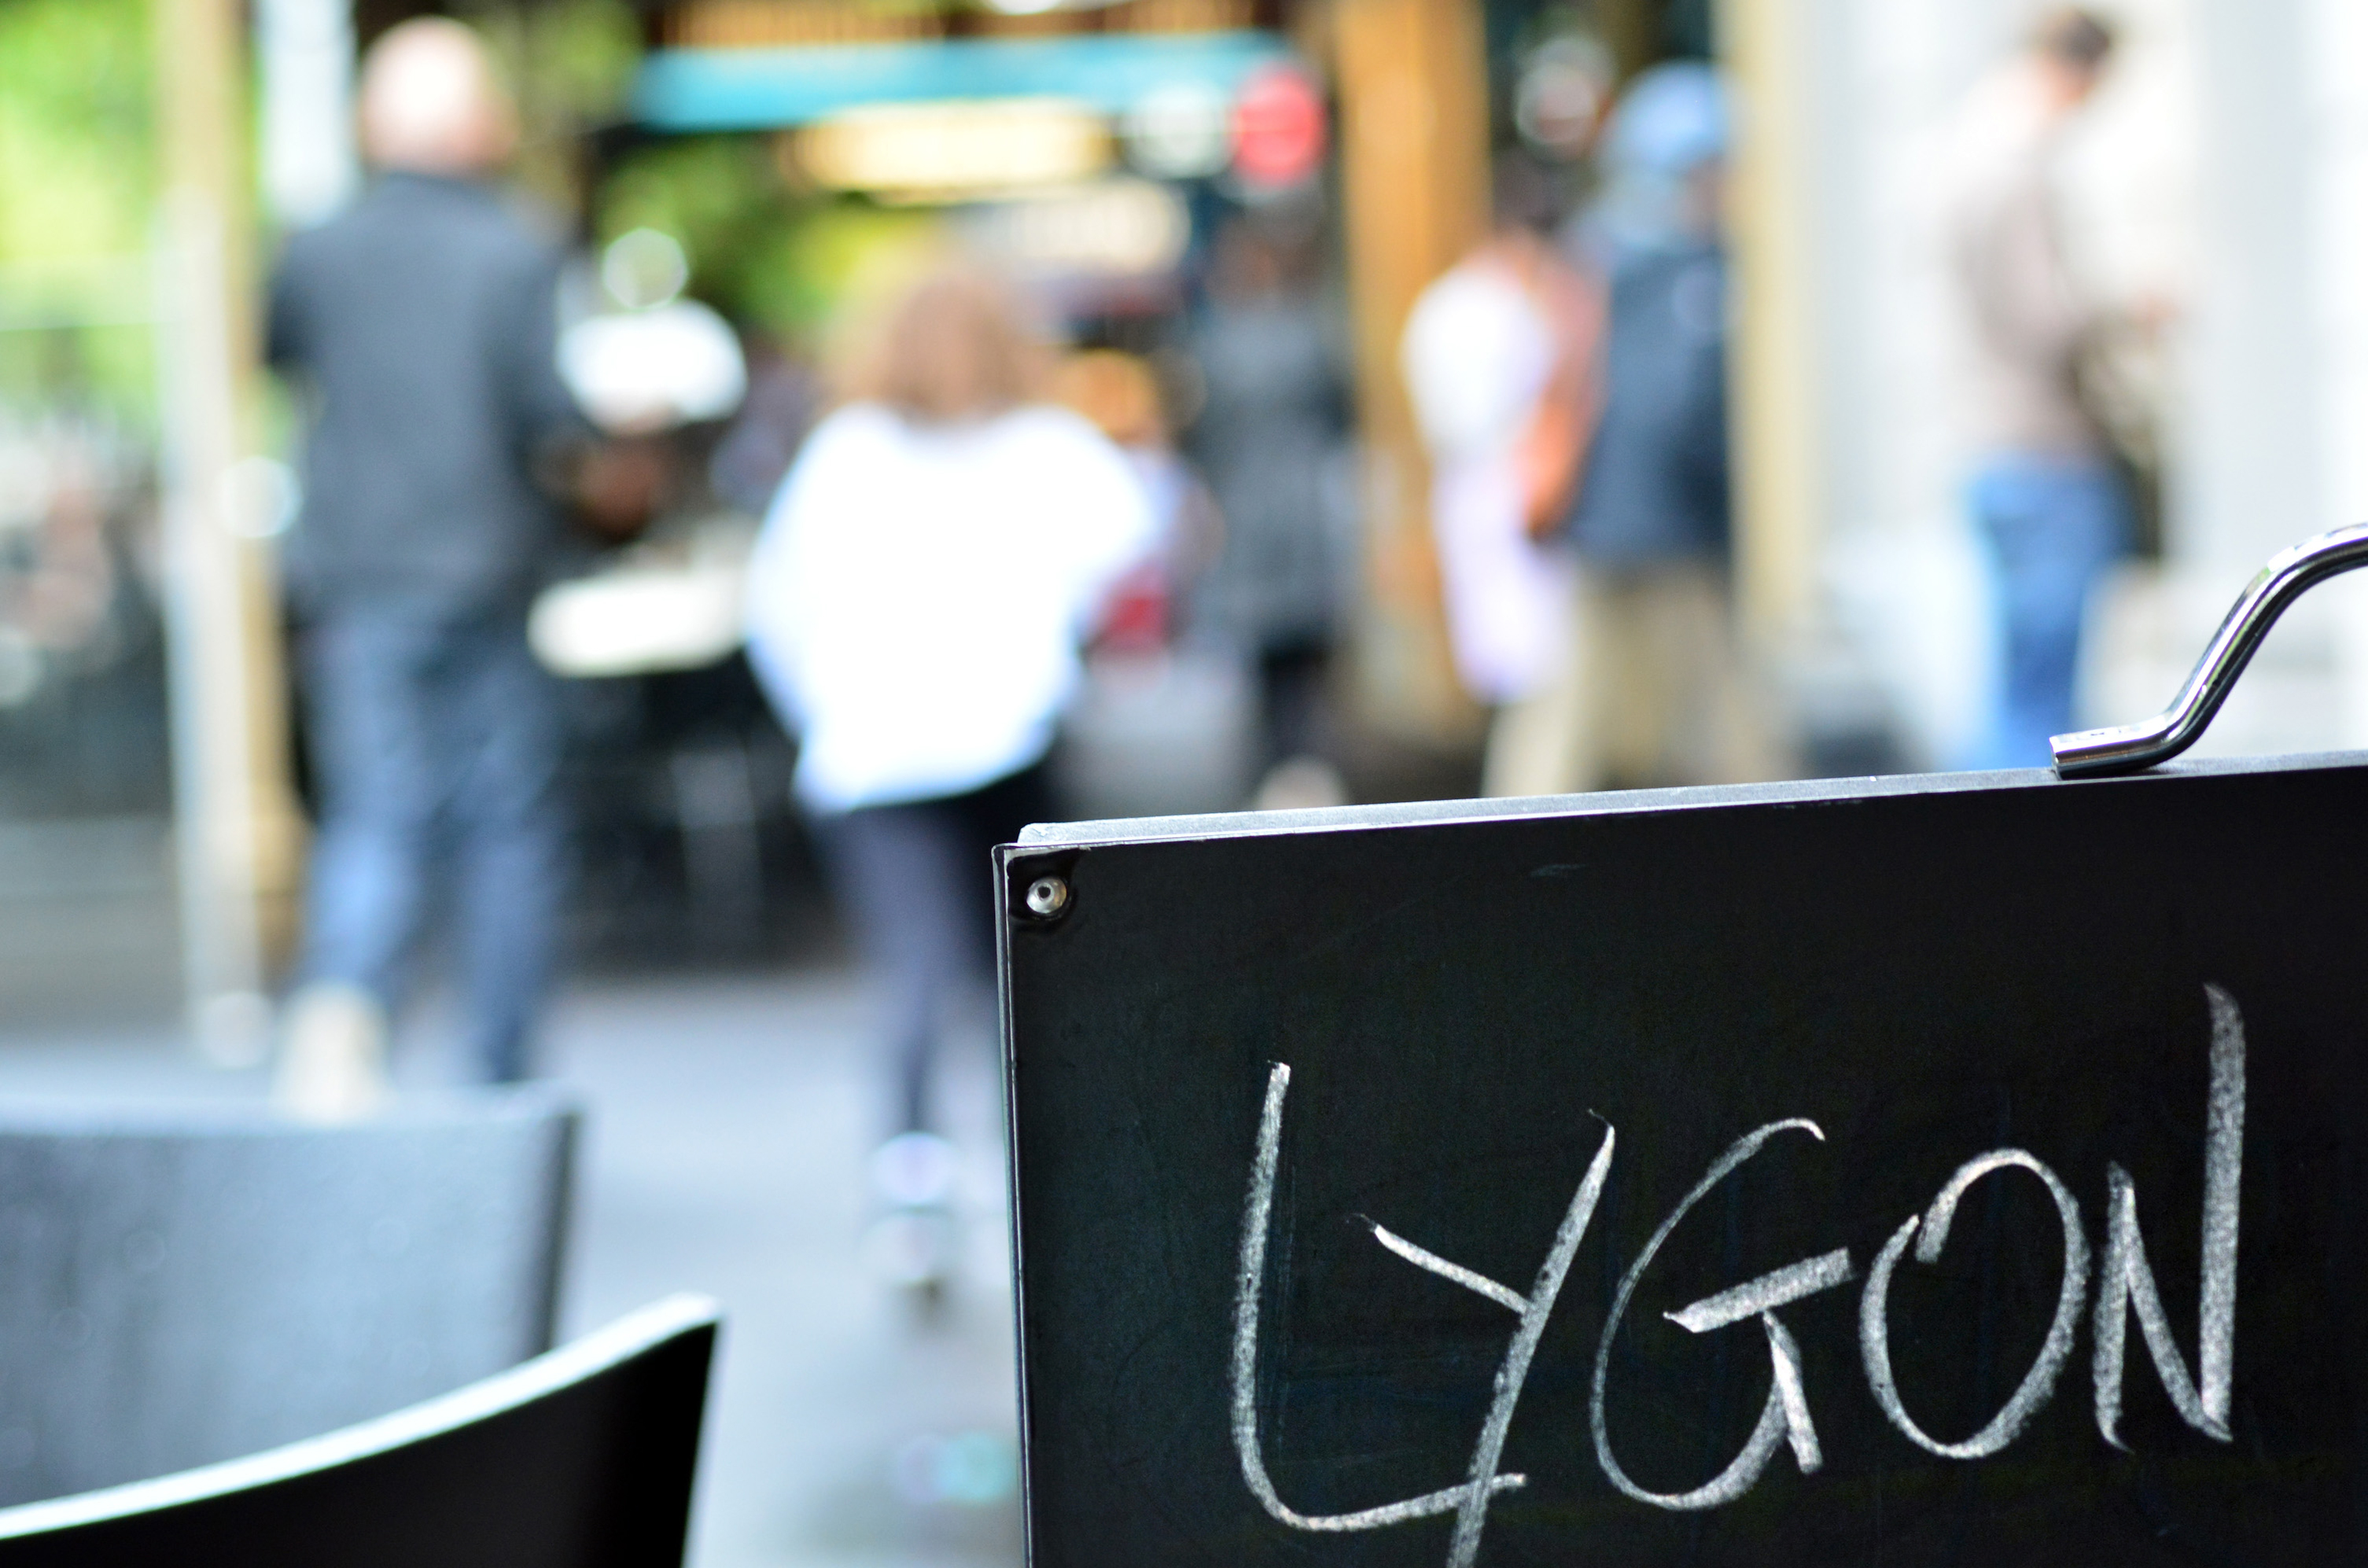 Lygon Street springs back to life as COVID-19 restrictions ease